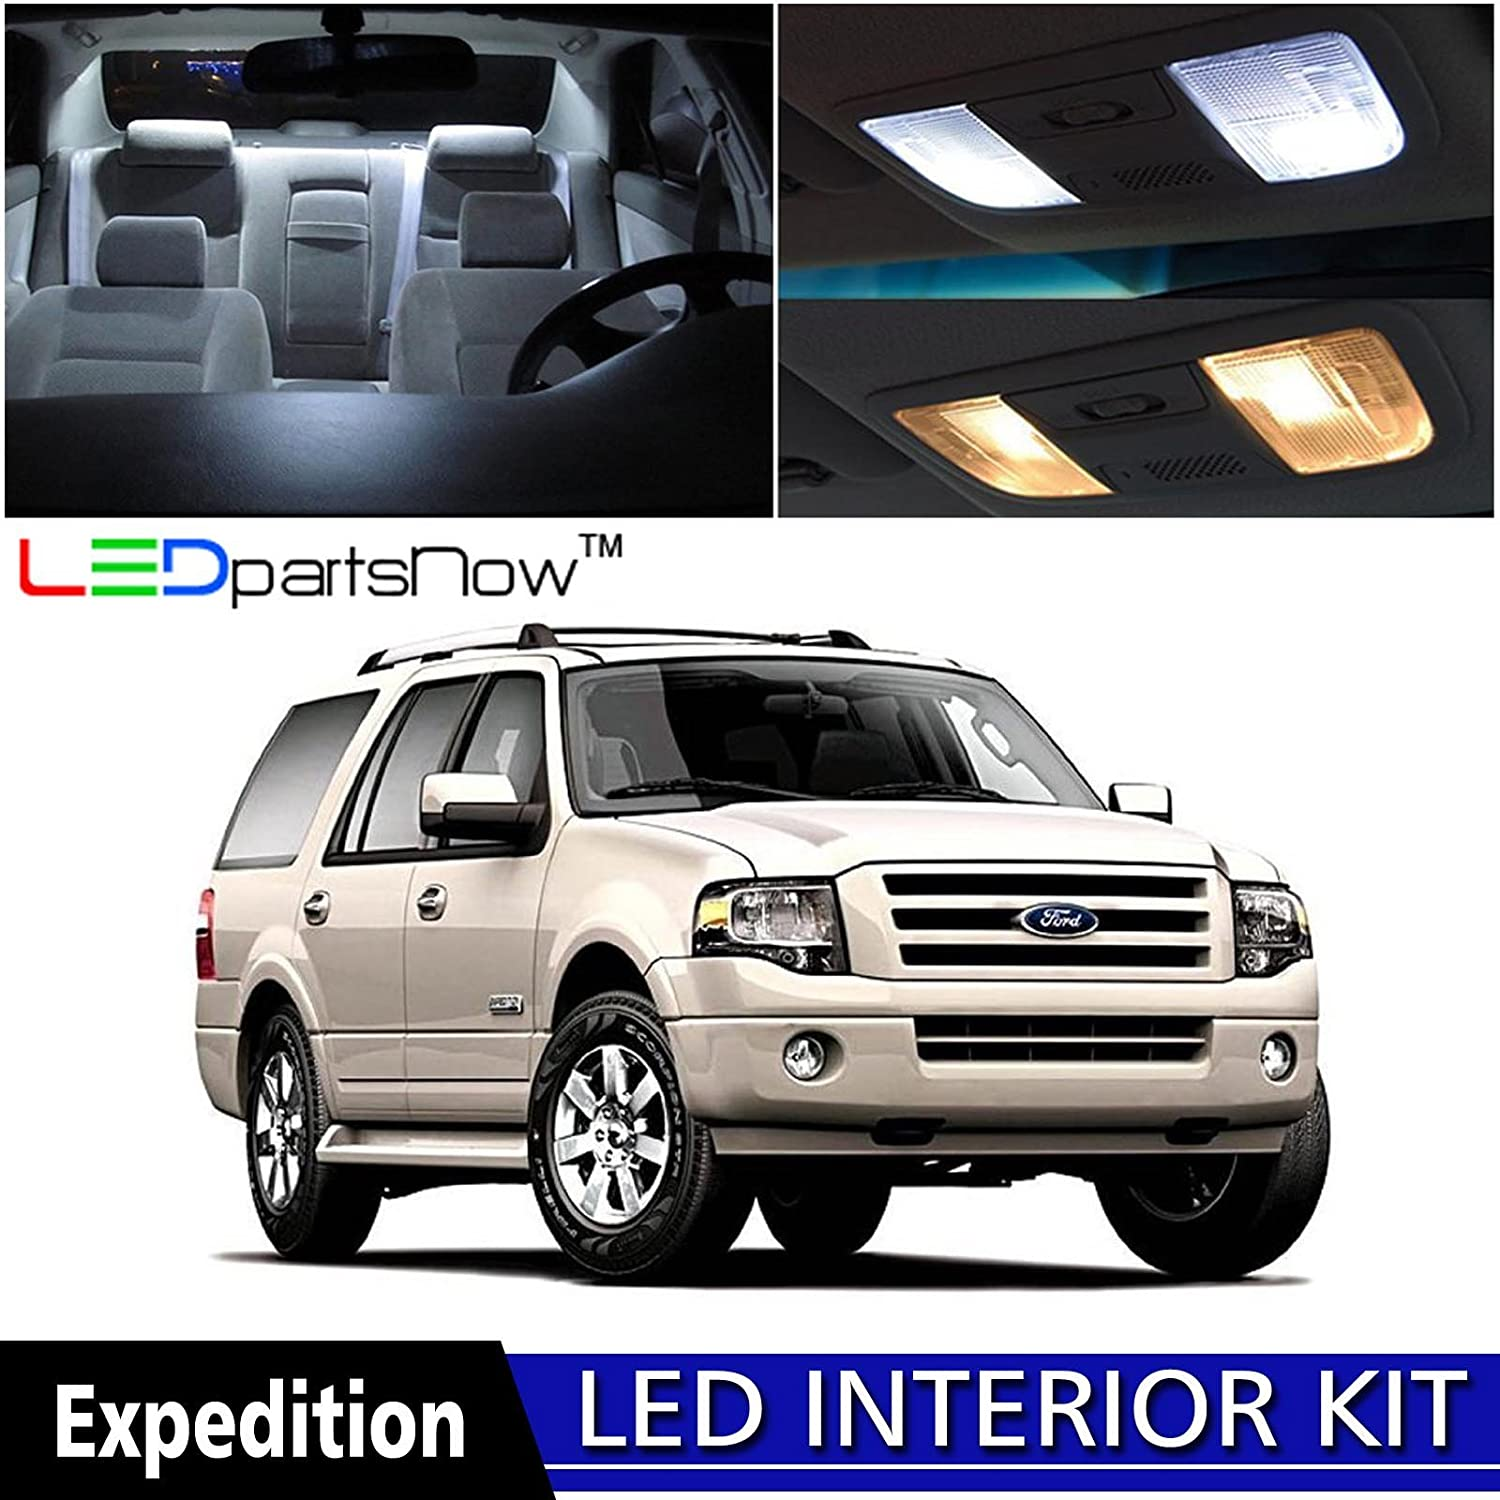 2000 Explorer Overhead Console Diagram Wiring Diagrams Ford Expedition 2008 Parts Add